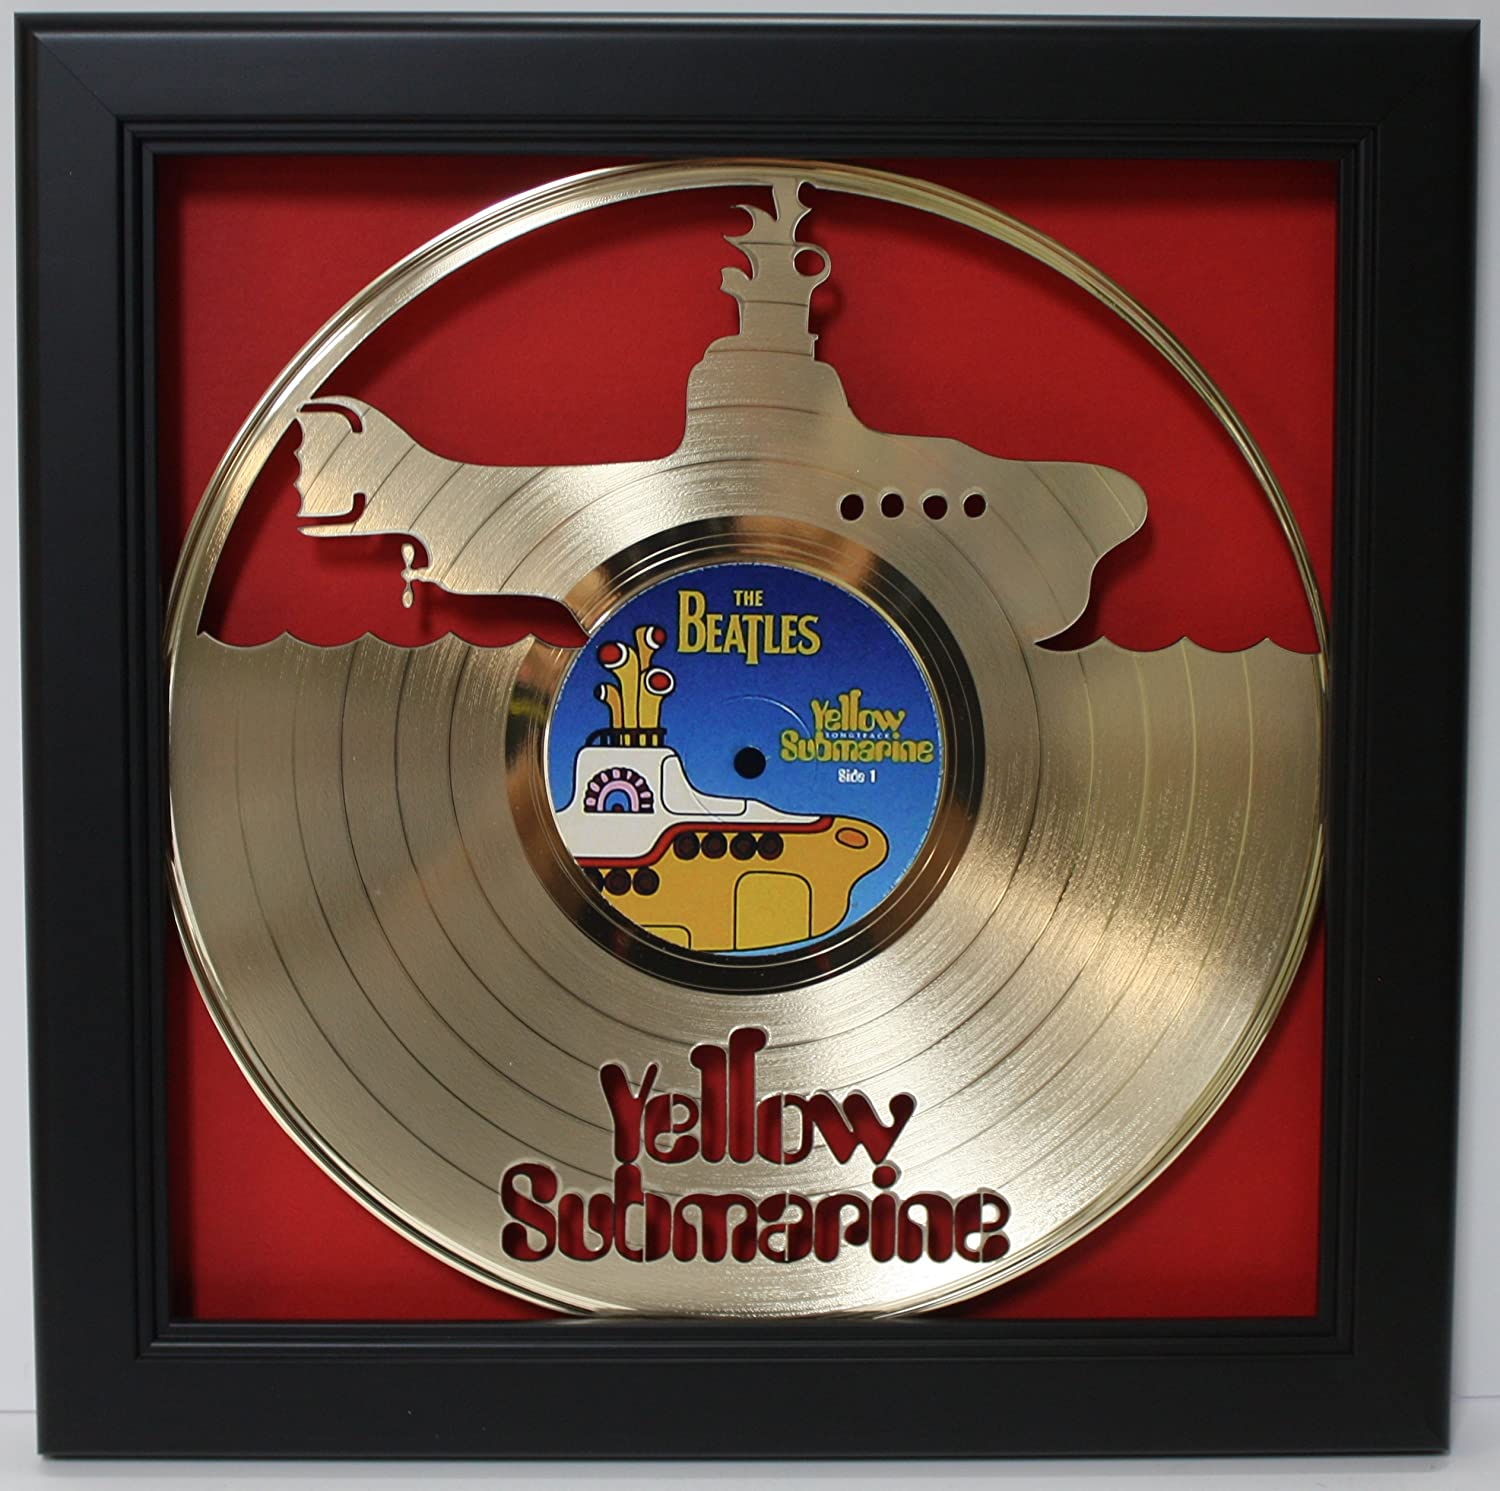 Beatles Yellow Submarine Framed Laser Cut Gold Plated Vinyl Record in Shadowbox Wallart